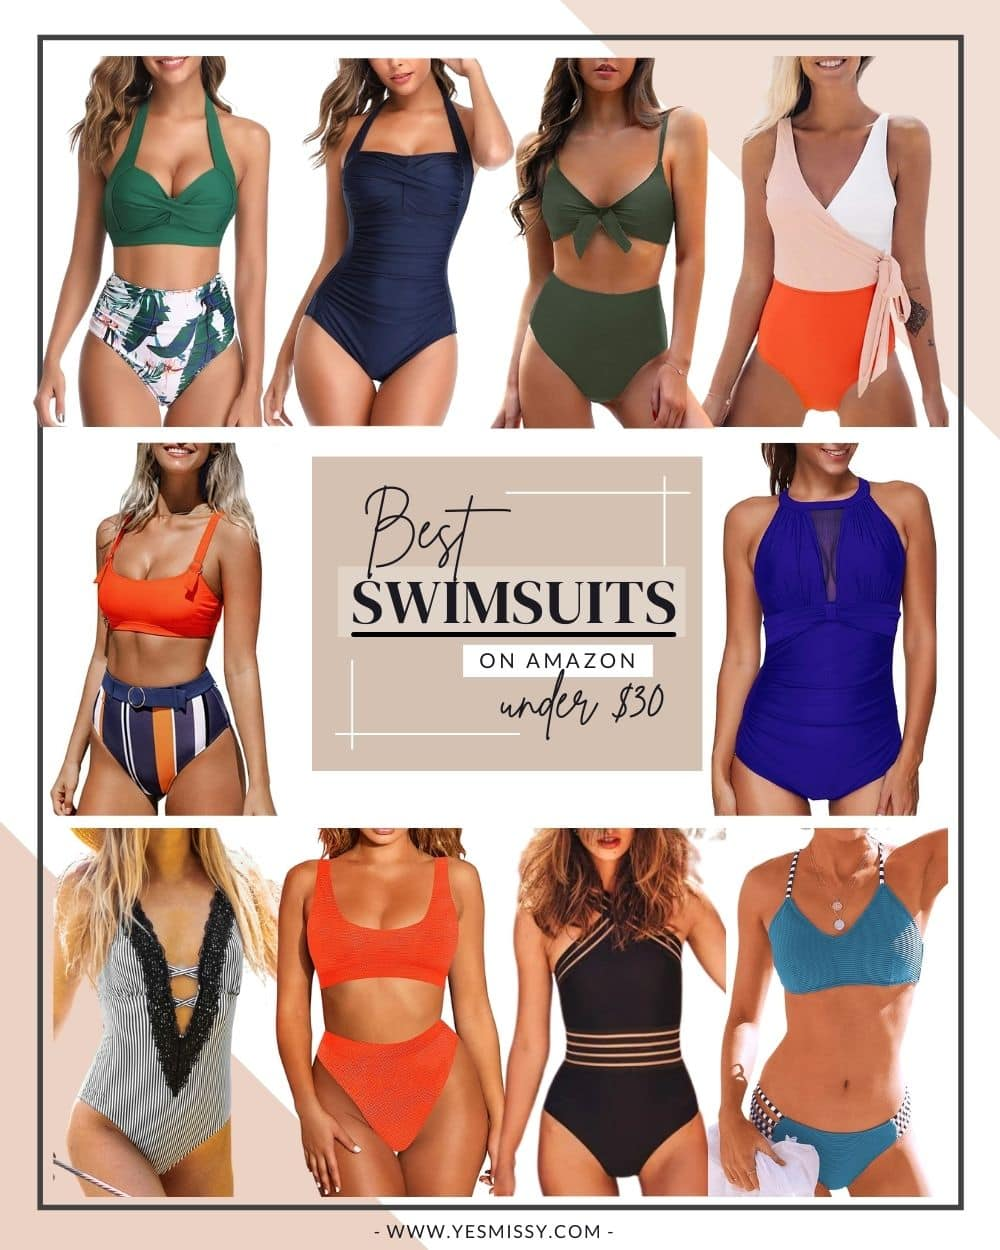 A roundup of the best selling swimsuits on Amazon. Whether you're looking for a bikini or one piece. Here are 10 of the top rated bathing suits under $30 that you'll find on Amazon